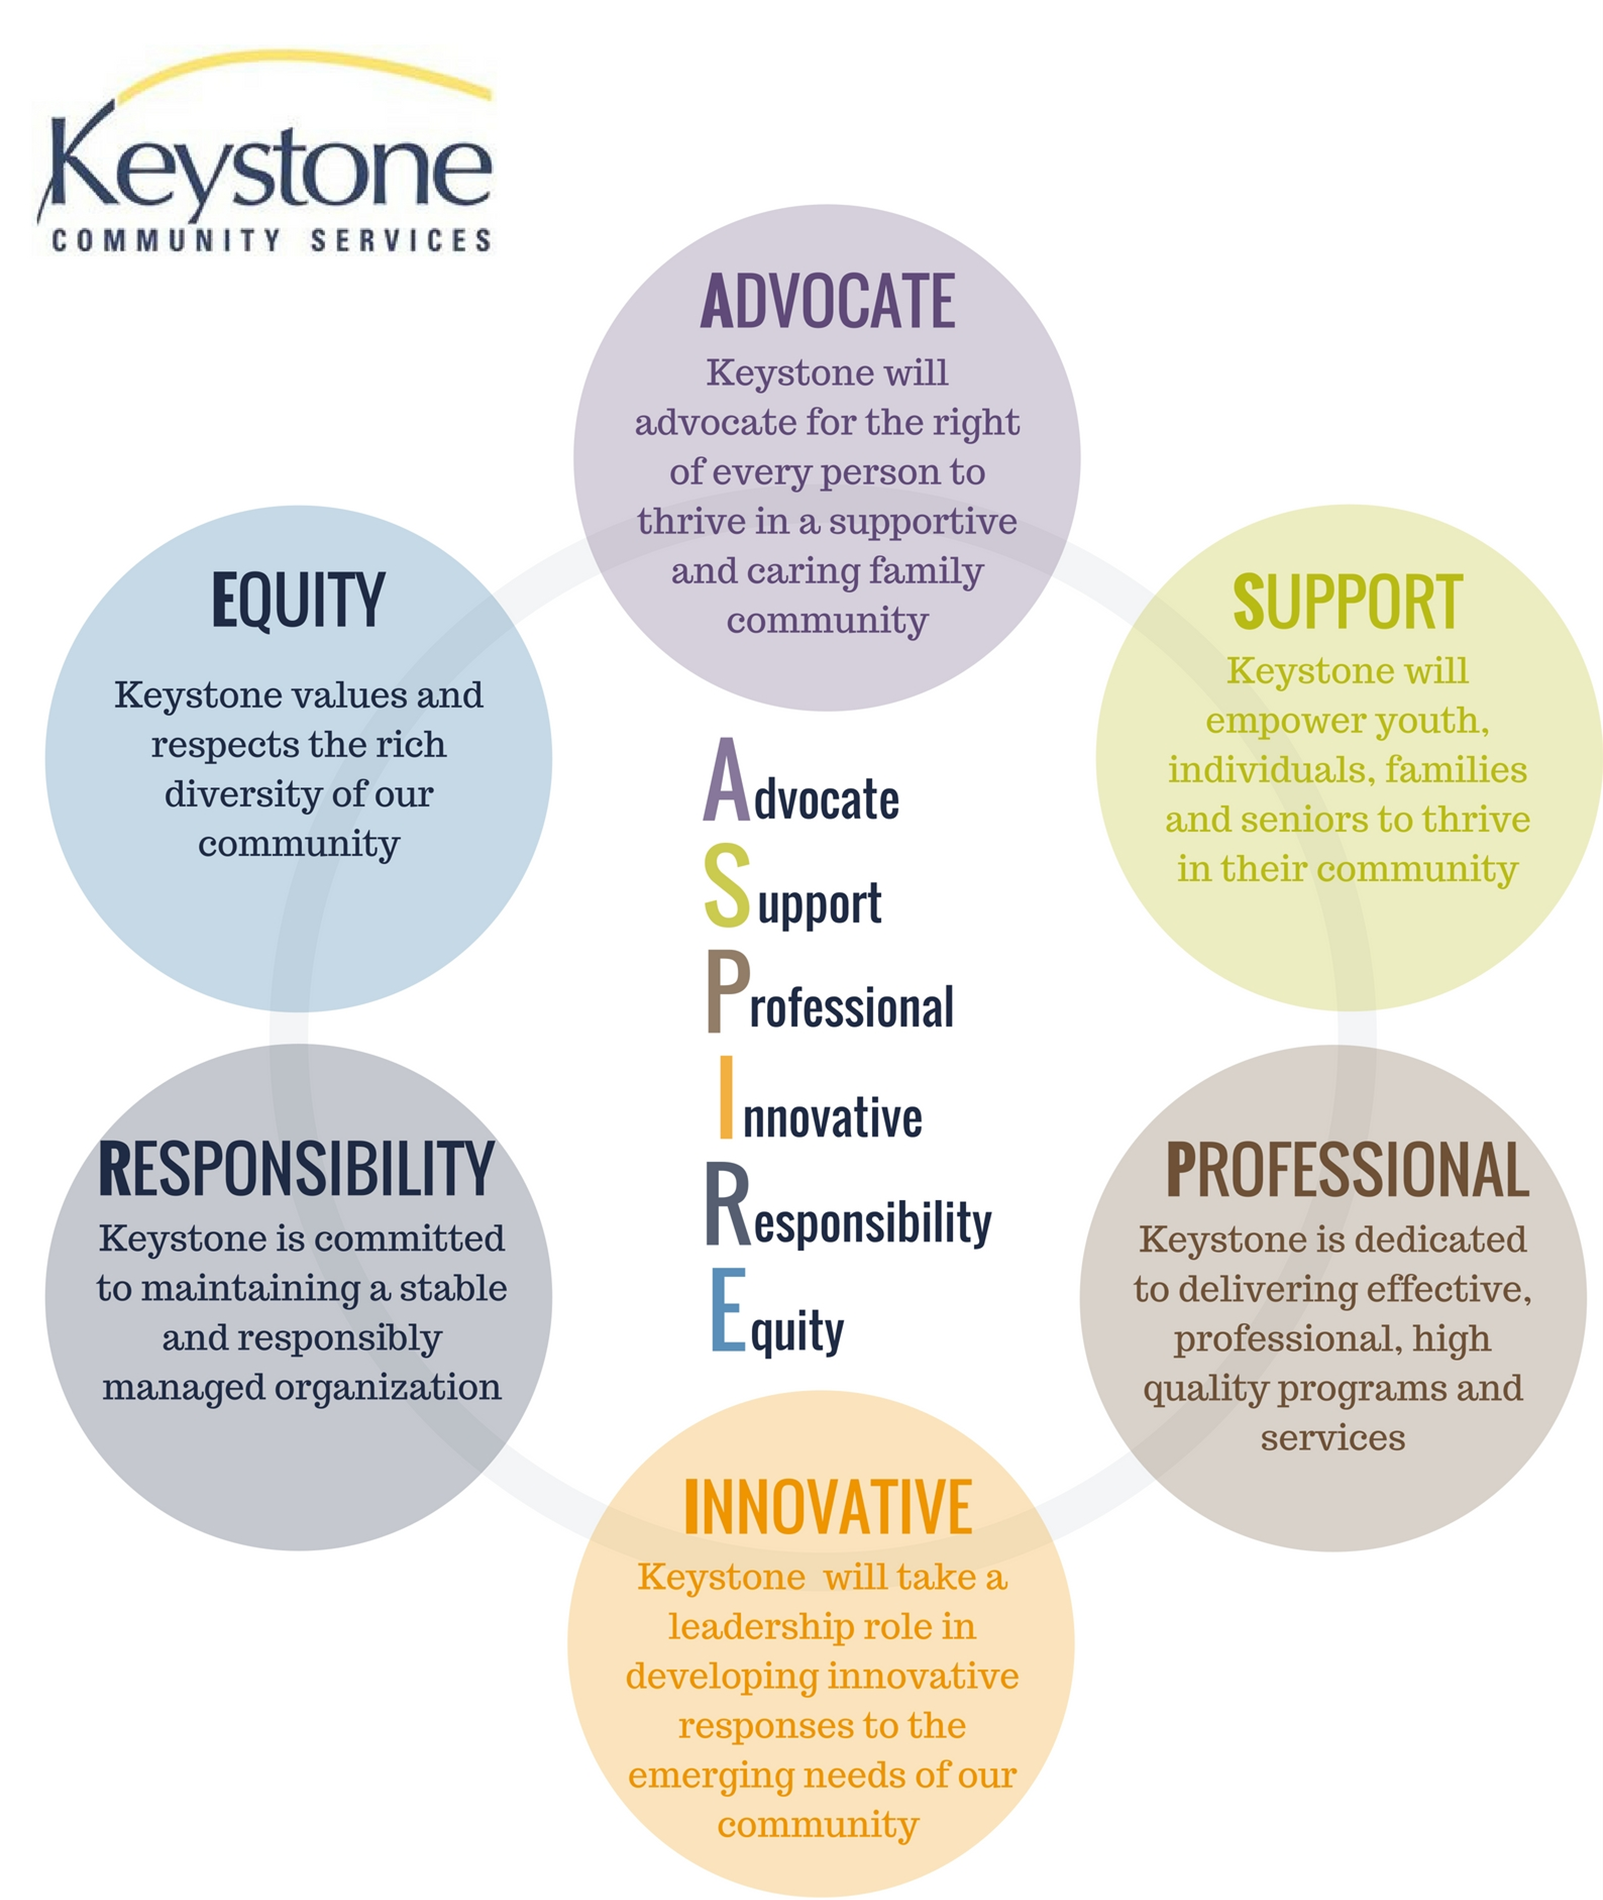 Keystone values